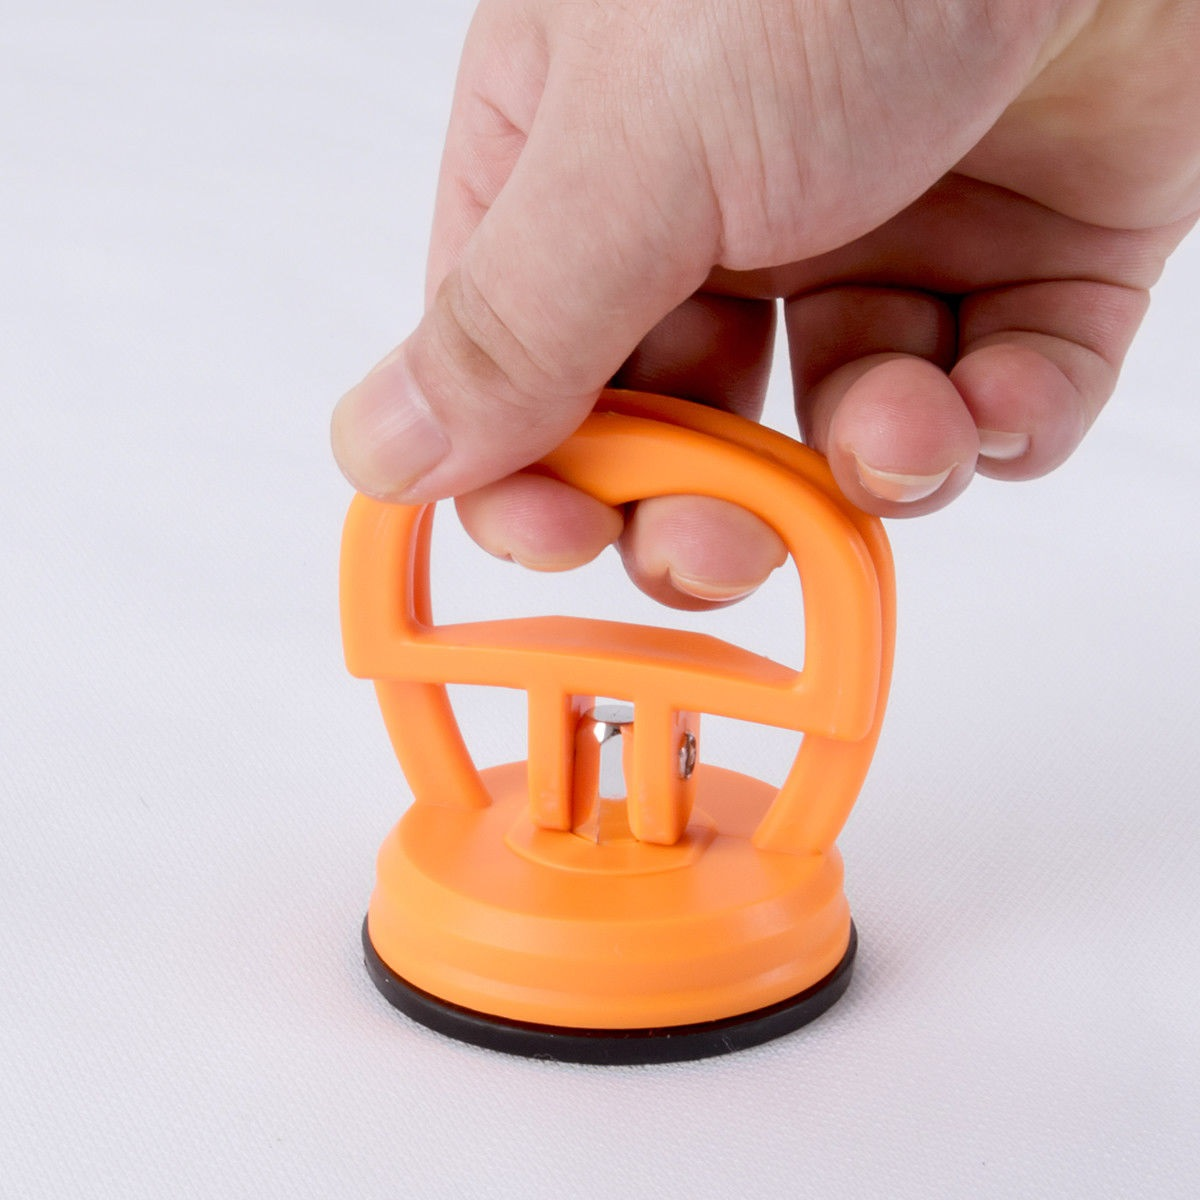 Suction Cup Puller 2pcs Orange Single Head Dent Lifter